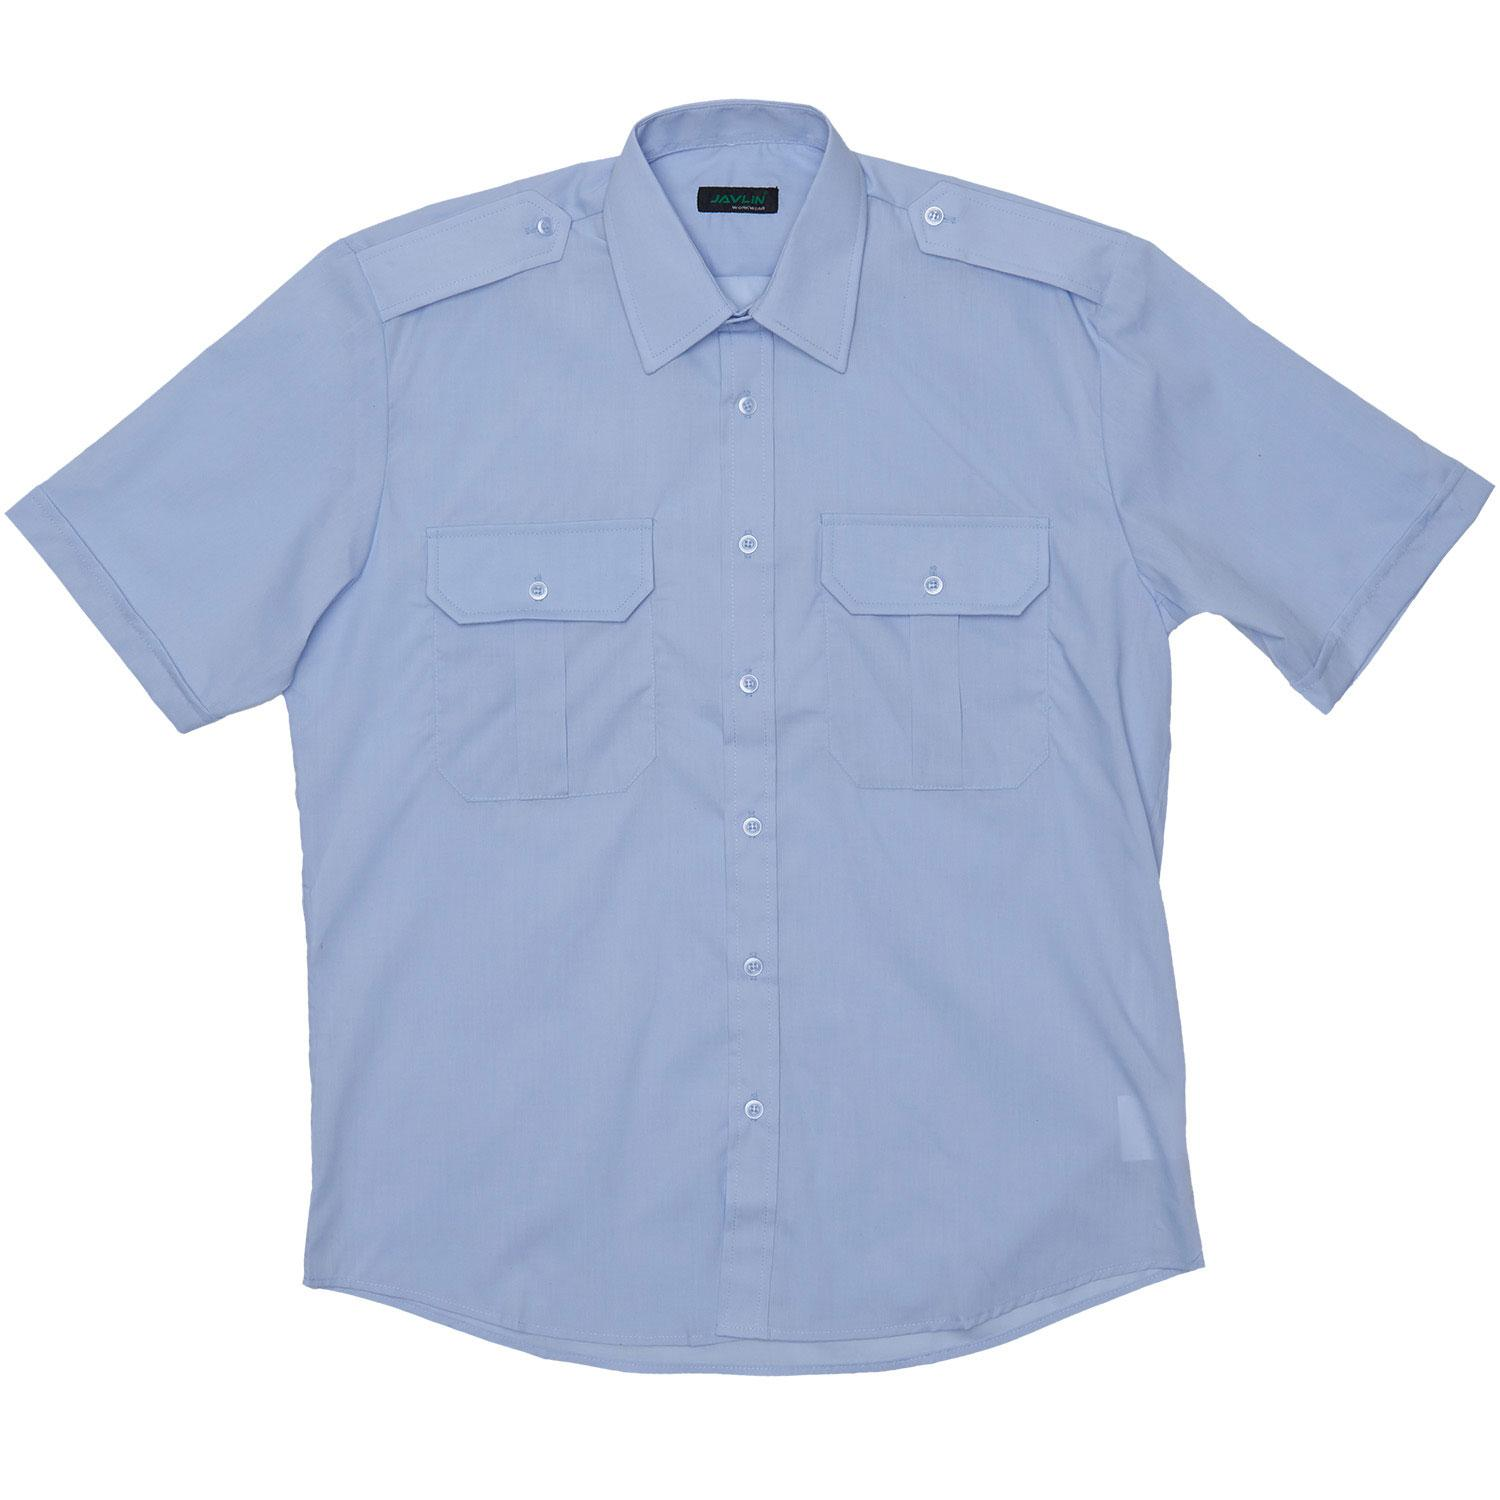 Pale Blue Pilot Shirt S / S [improved Styling]